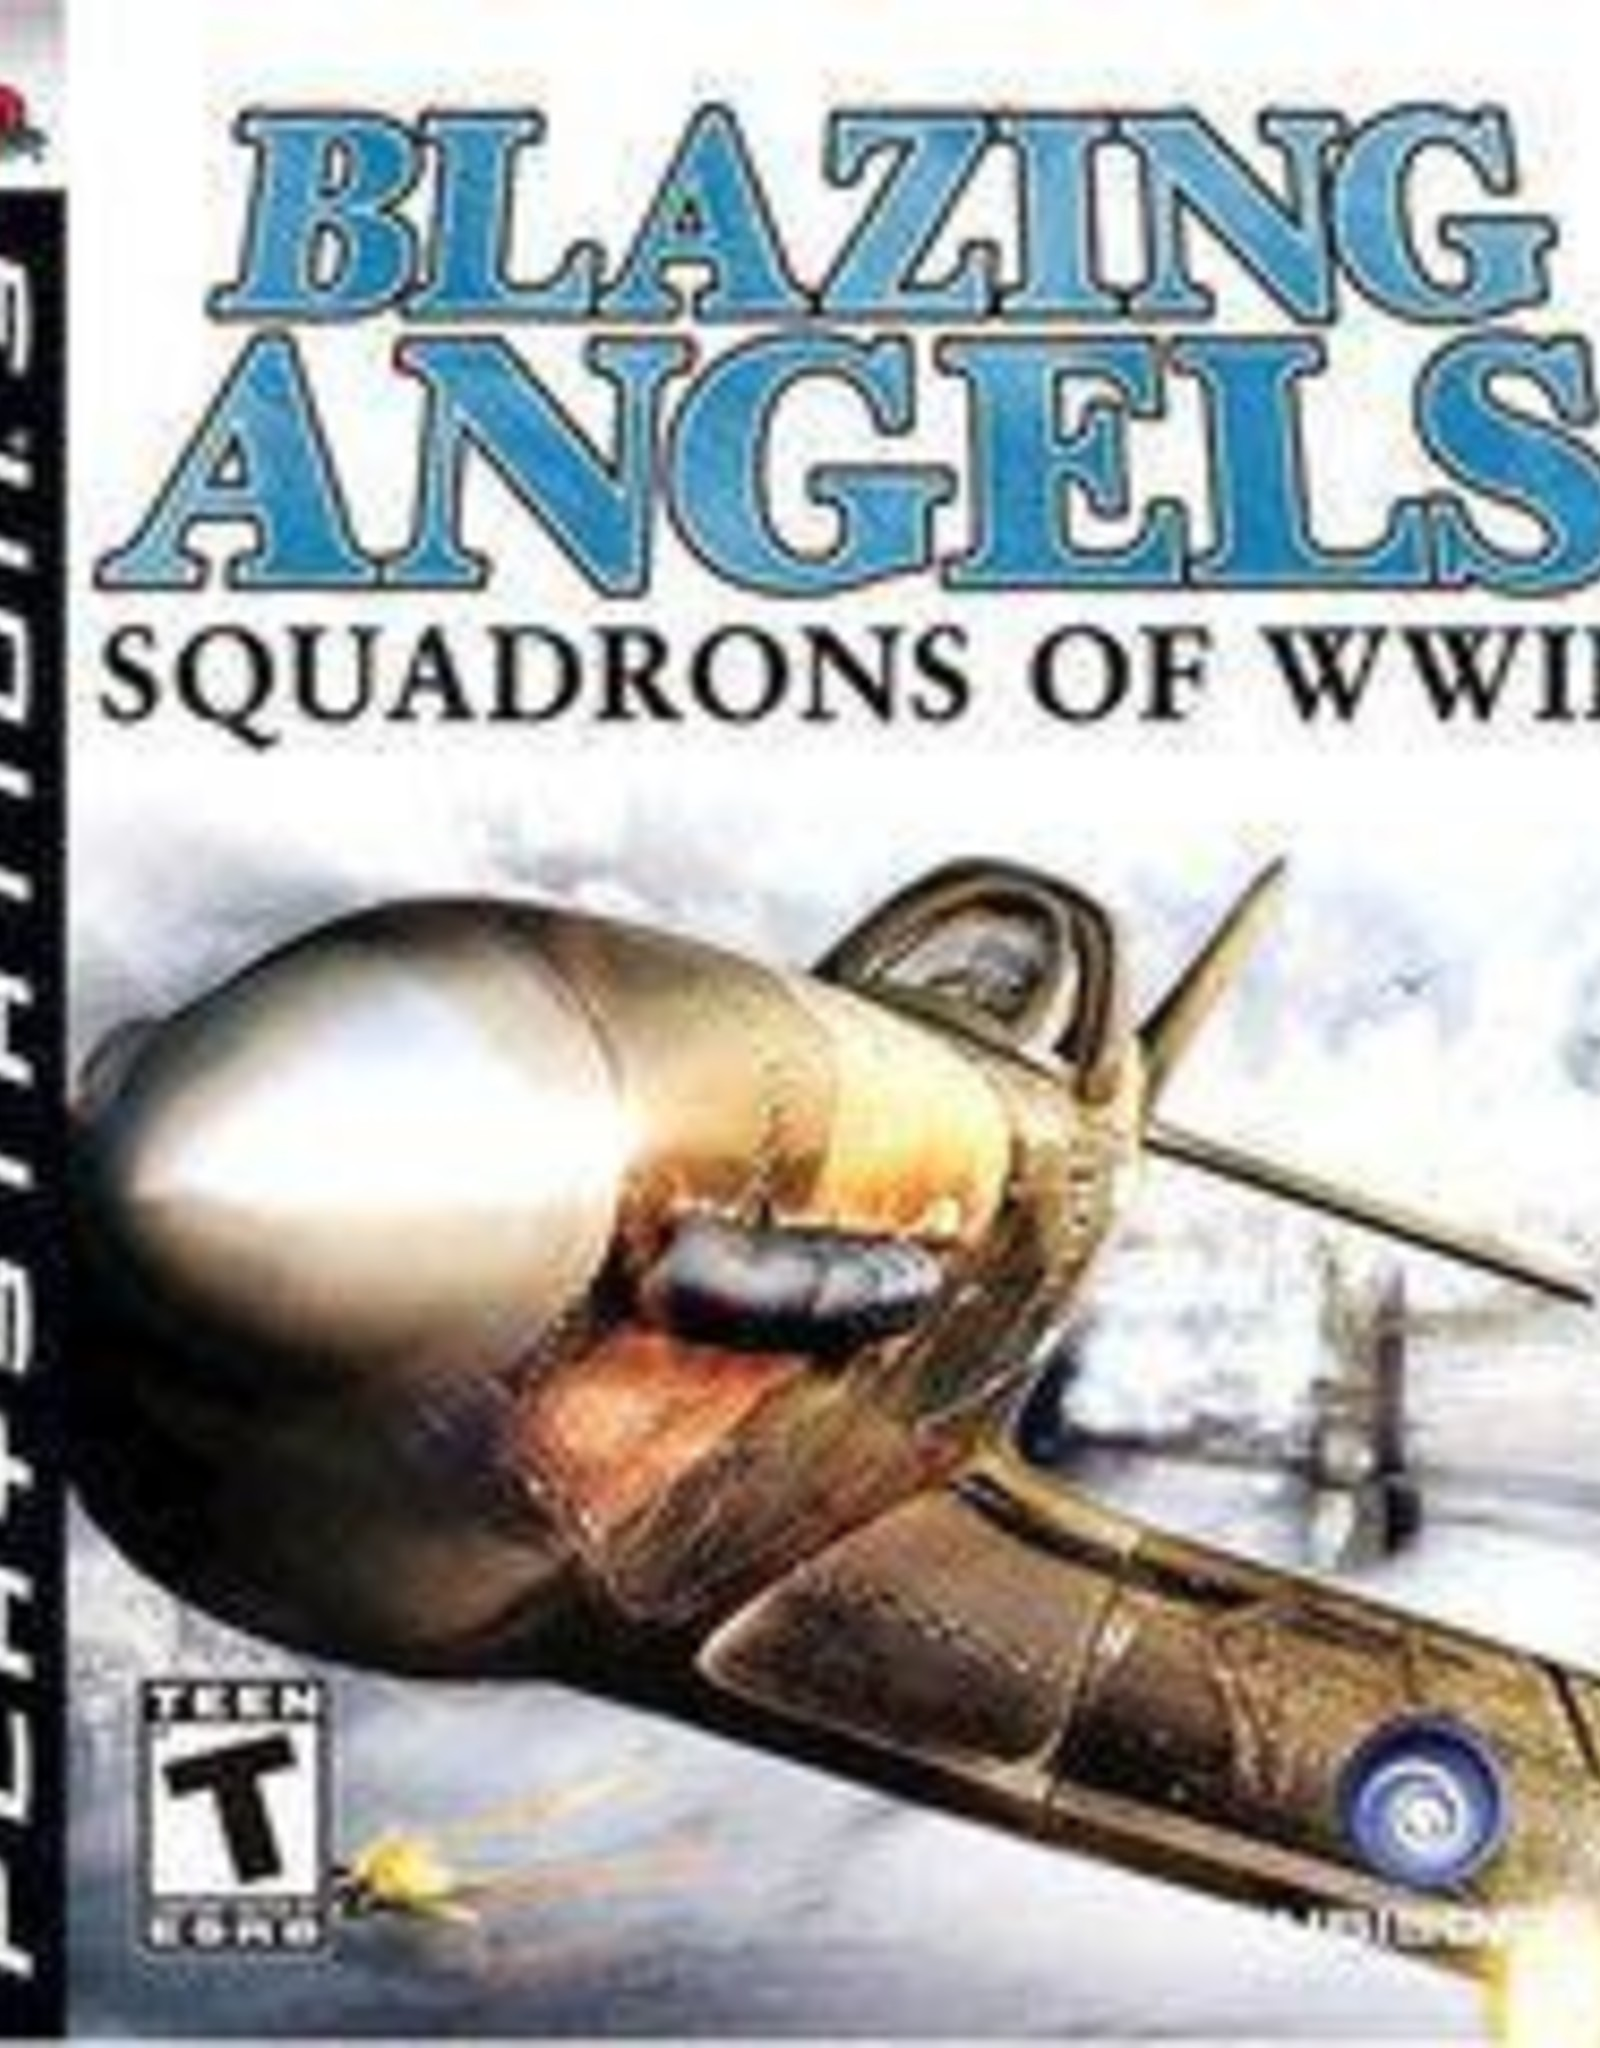 Playstation 3 Blazing Angels Squadrons of WWII (CIB)